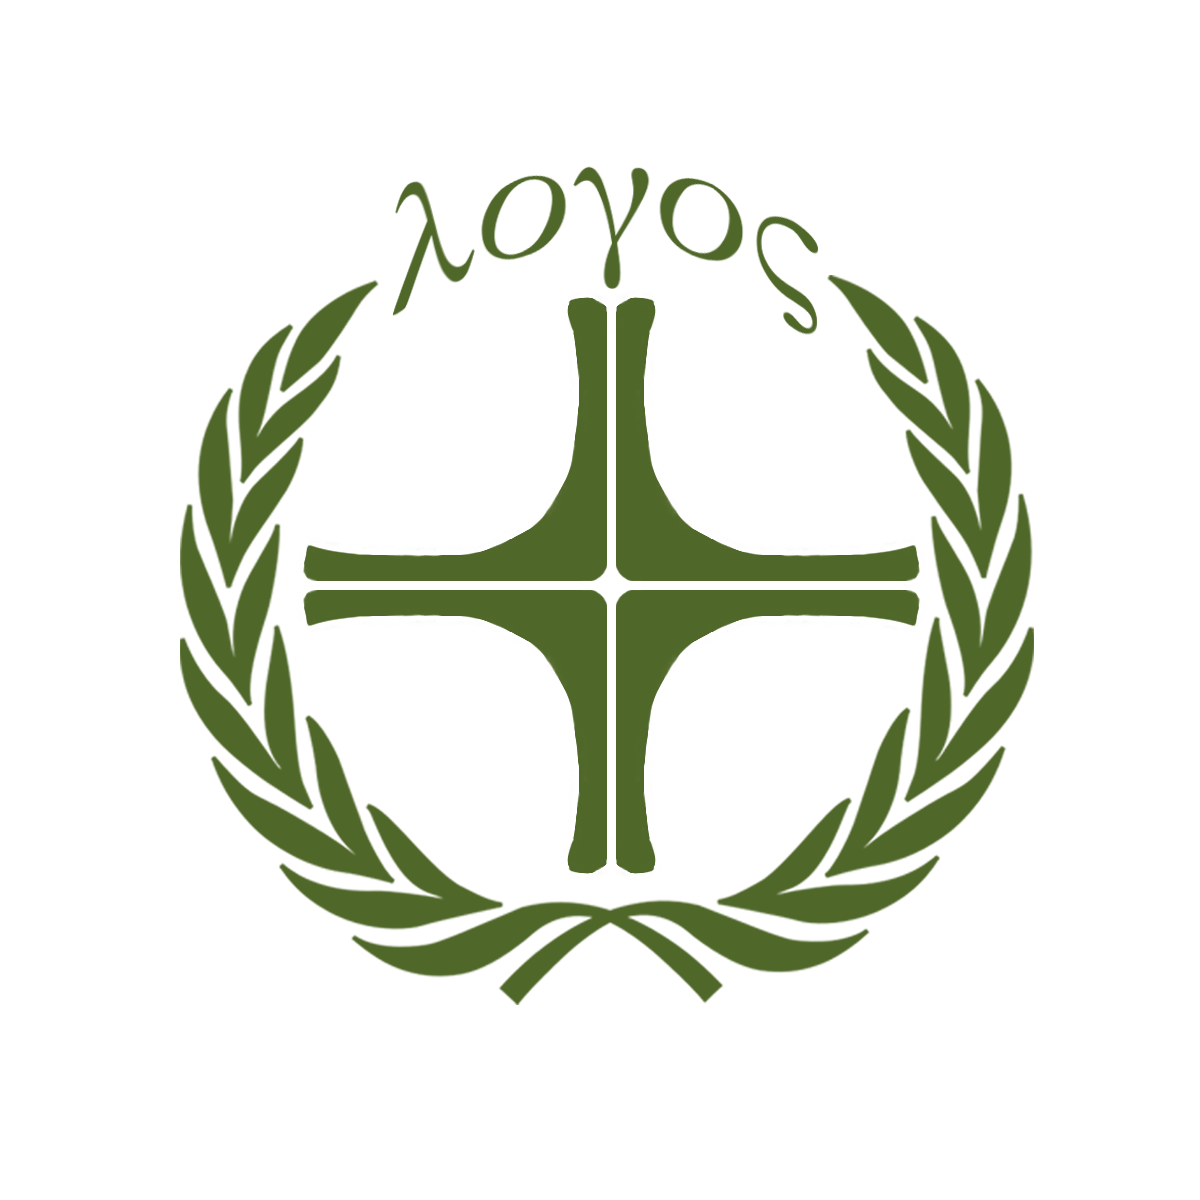 Our logo combines the cross with the laurel wreath, the classical symbol of victory.